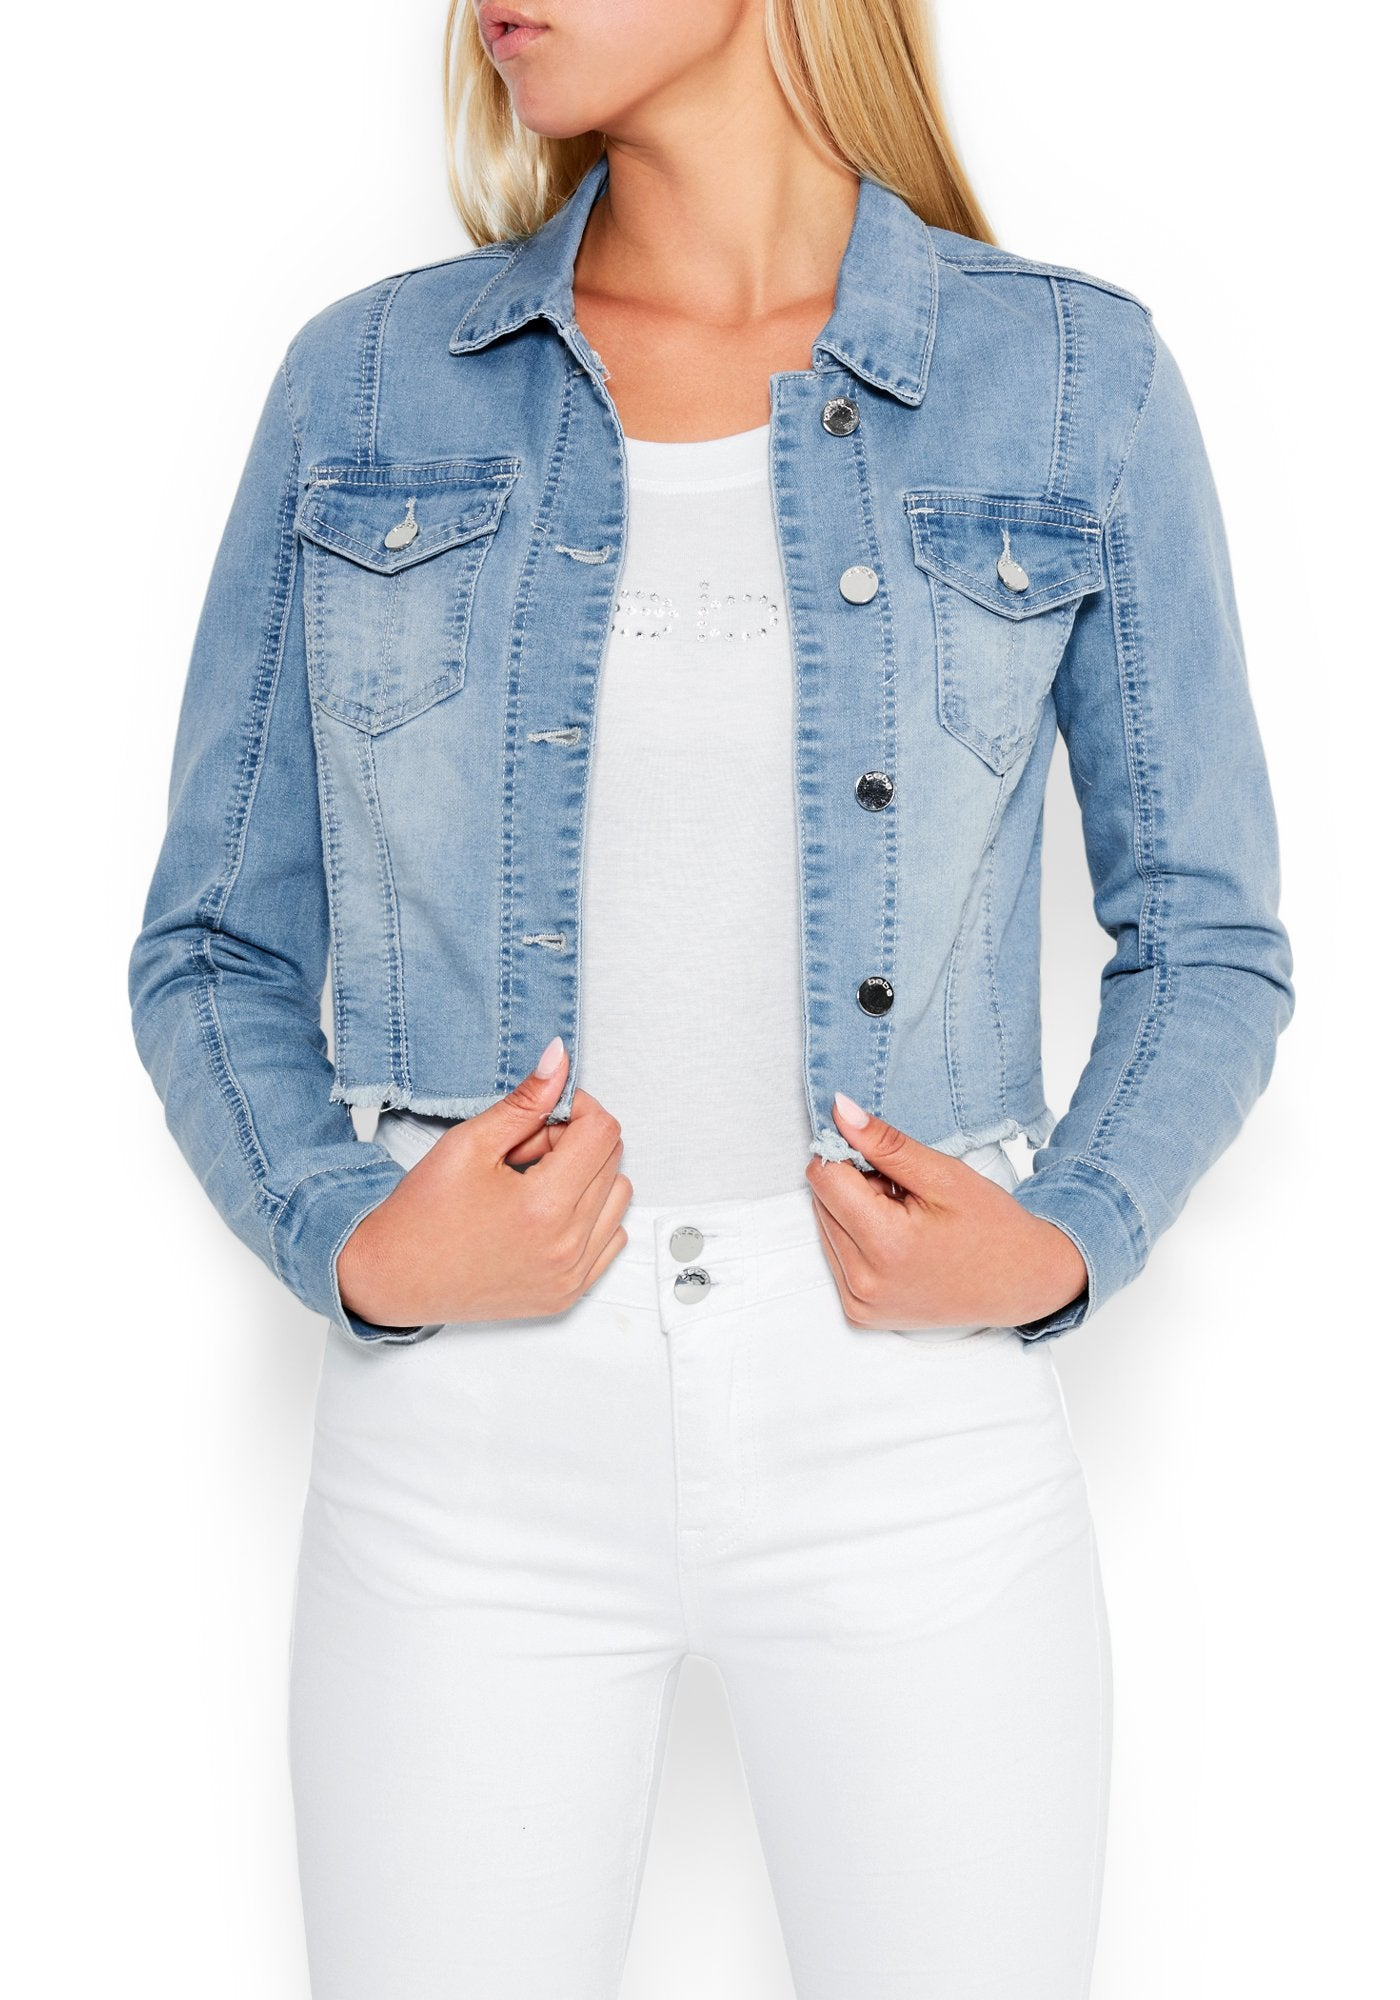 Image of Women's Bebe Logo Raw Hem Denim Jacket, Size Large in LIGHT WASH Cotton/Spandex